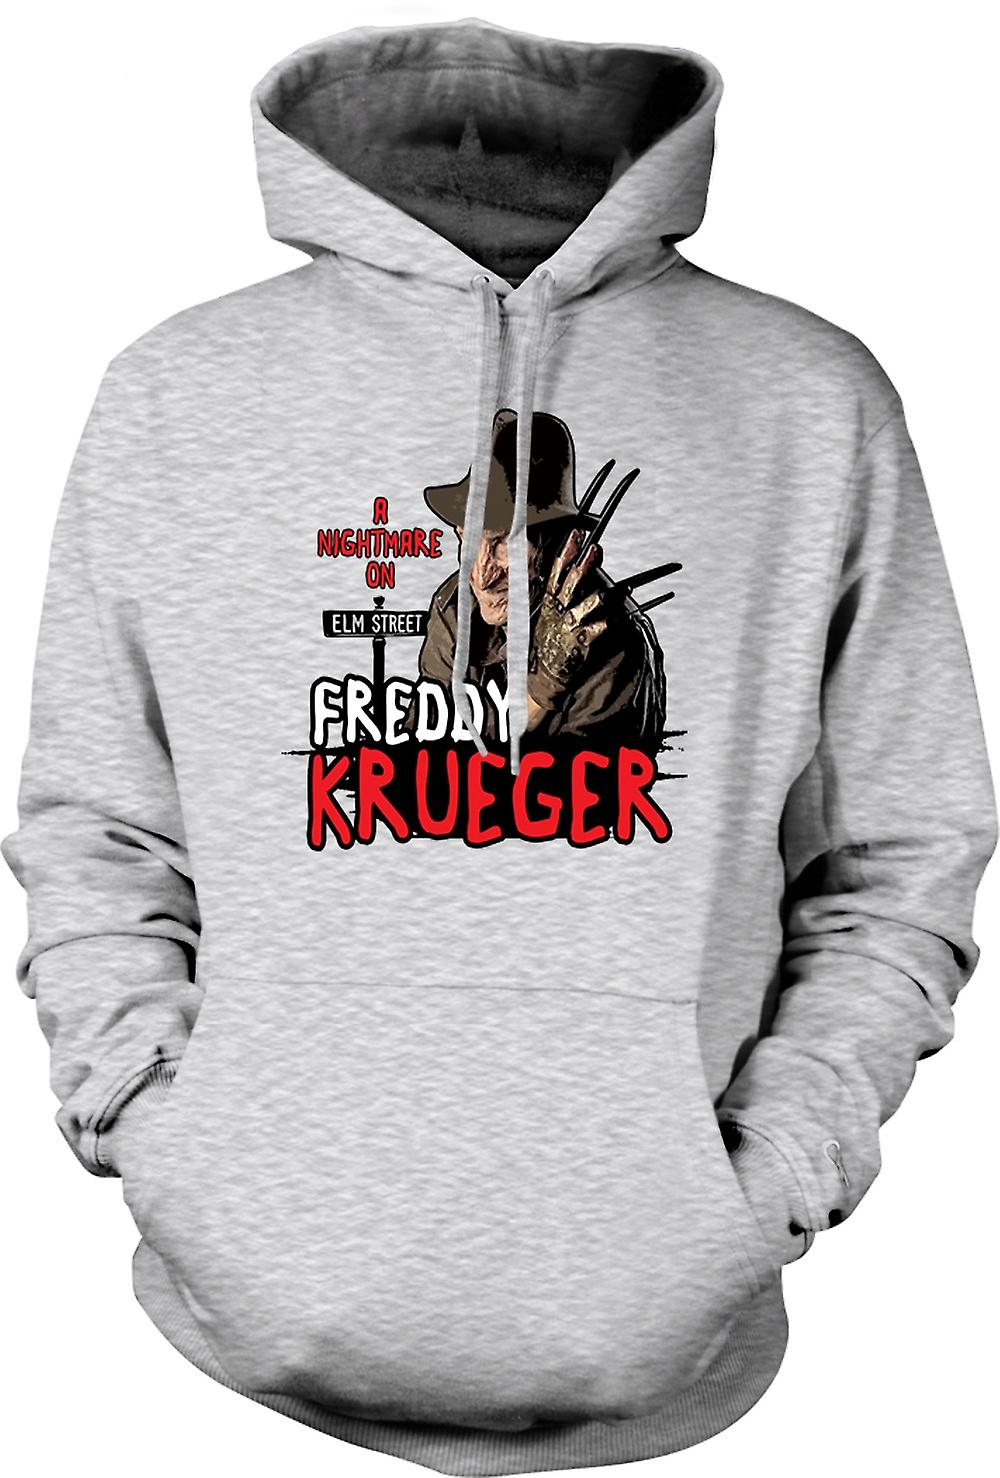 Mens Hoodie - Nightmare On Elm Street - Freddy Krueger